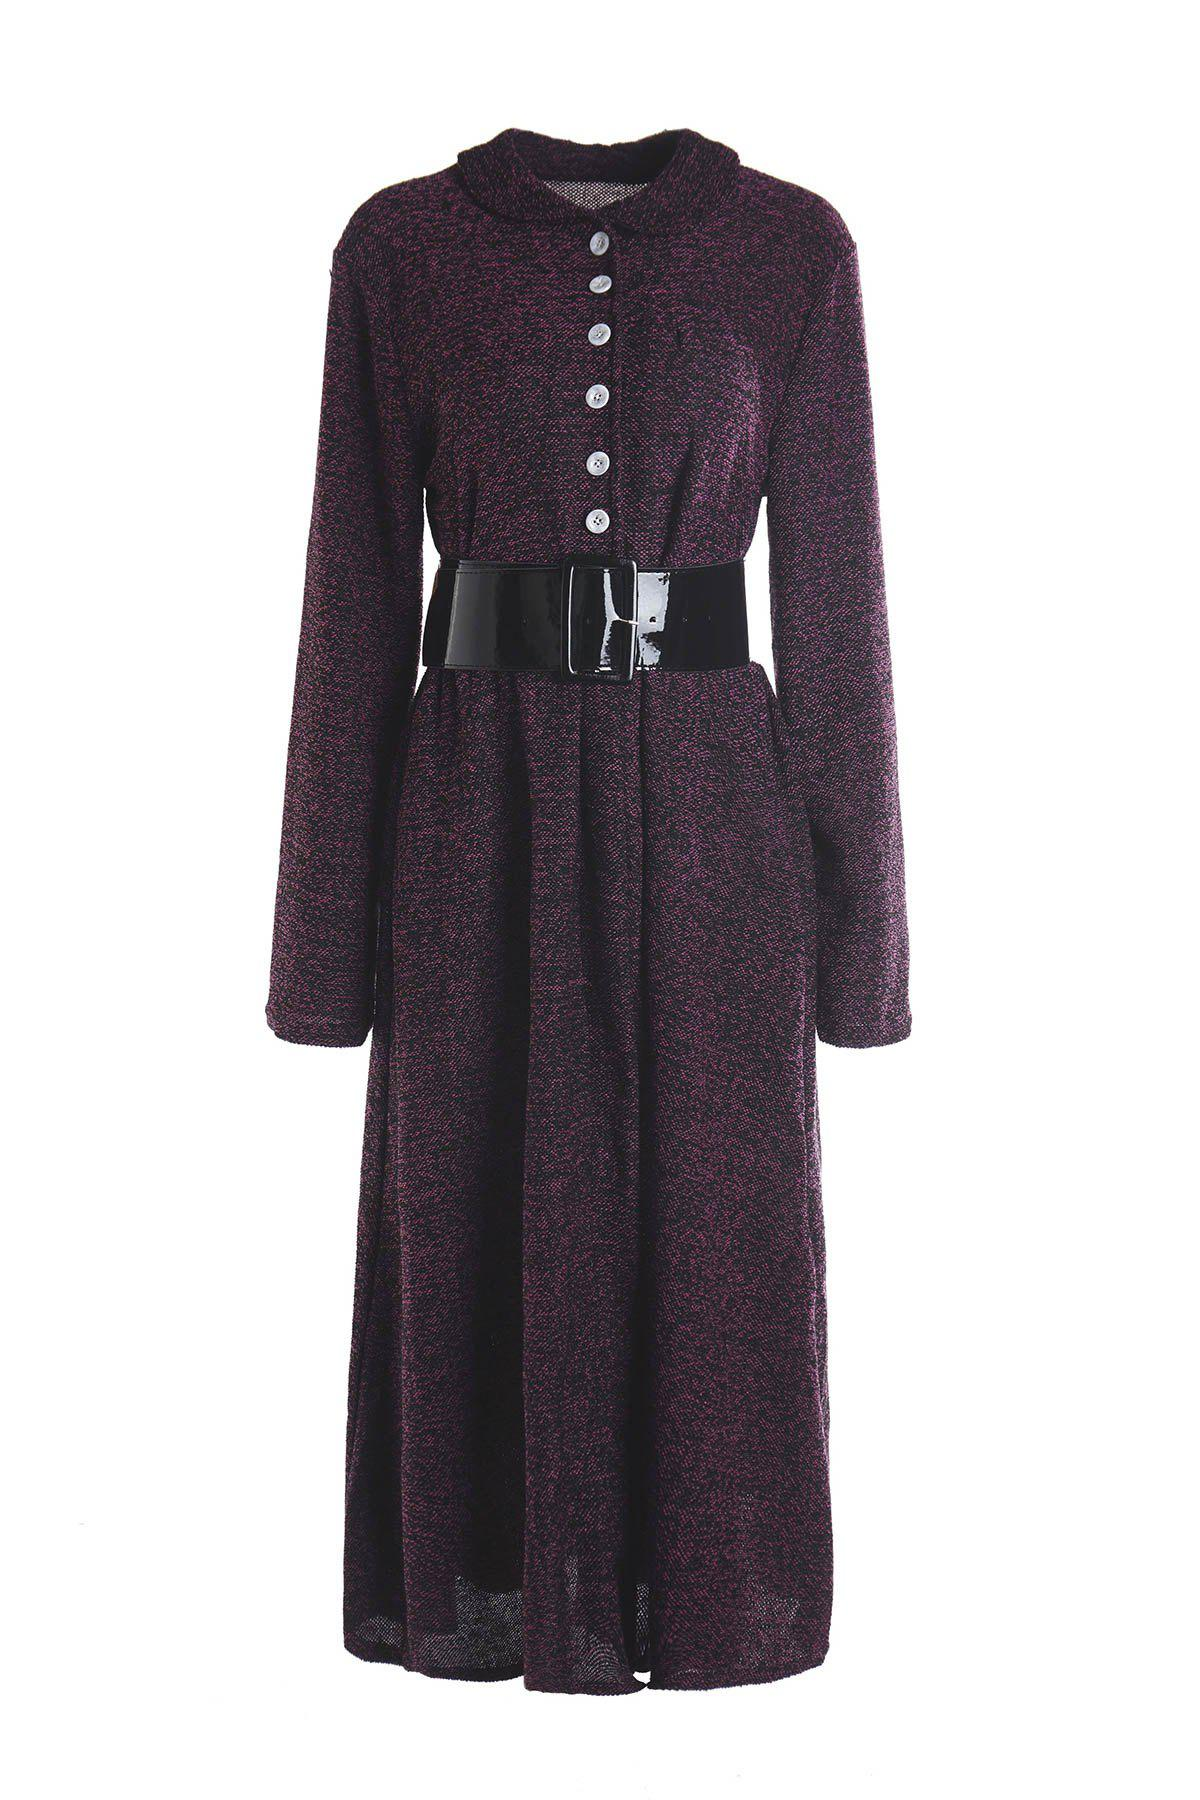 Vintage Women's Turn-Down Collar Long Sleeve A-Line Dress - PURPLE L